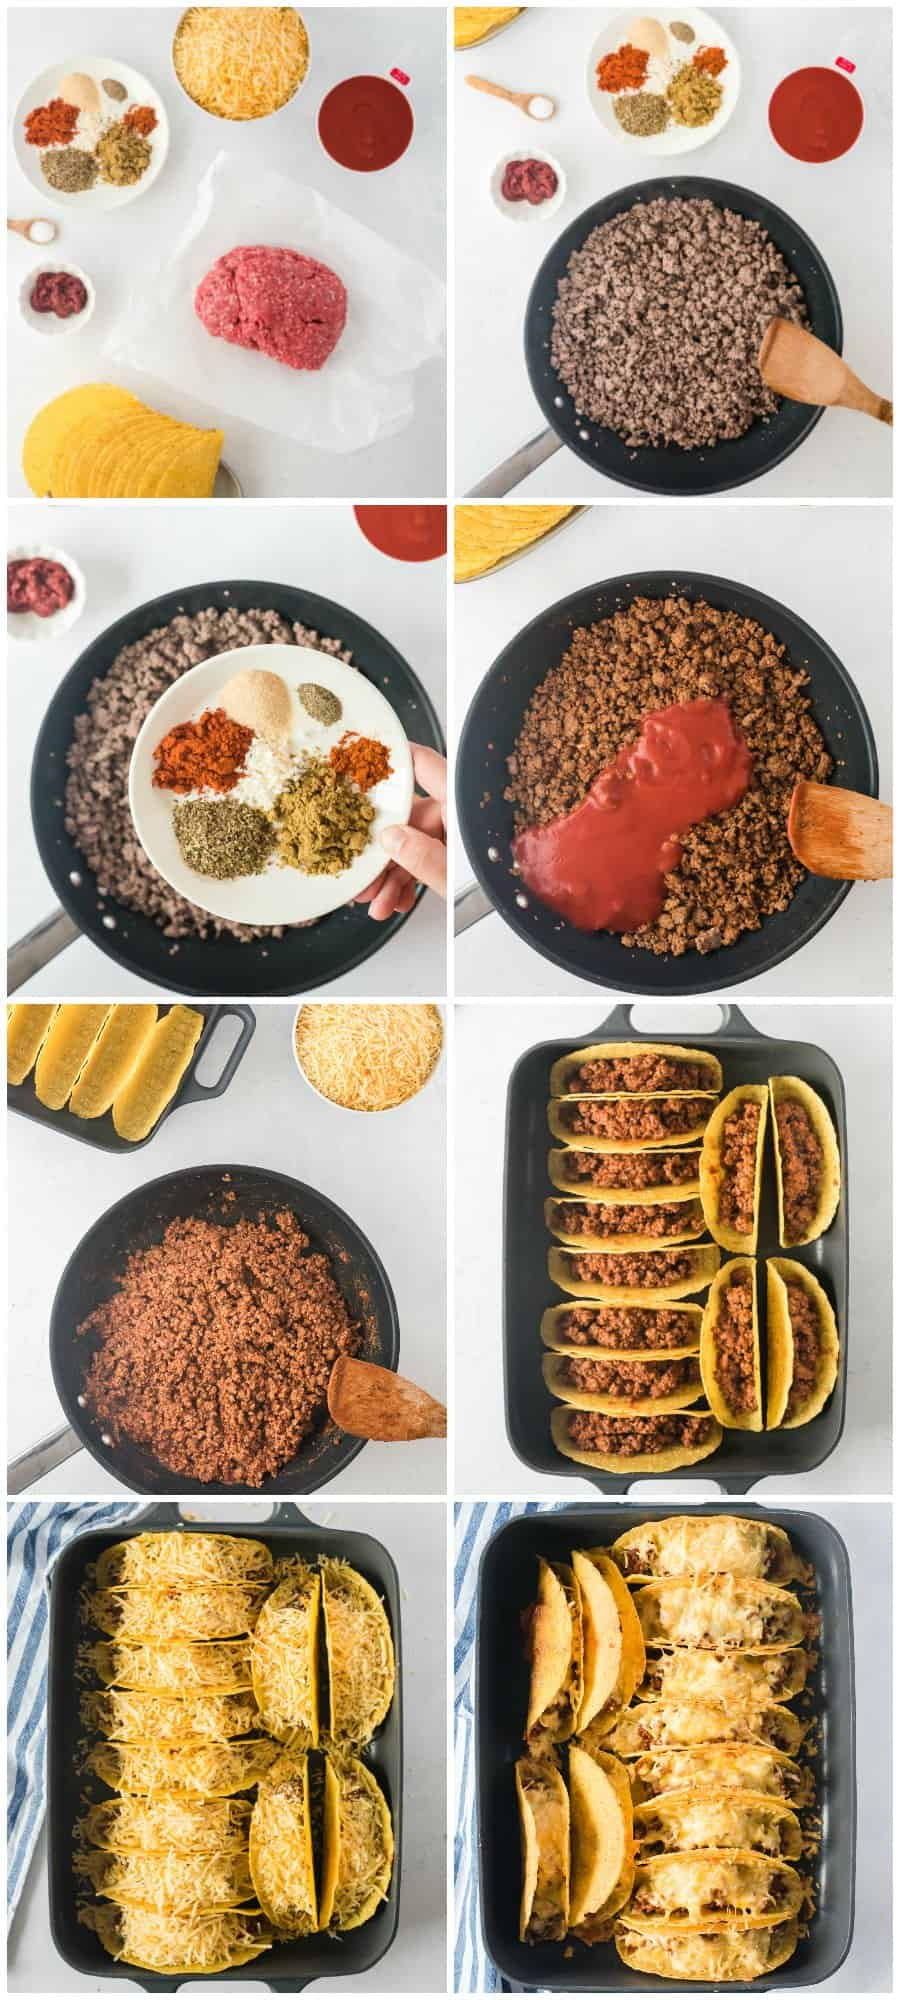 step by step photos of how to make beef tacos